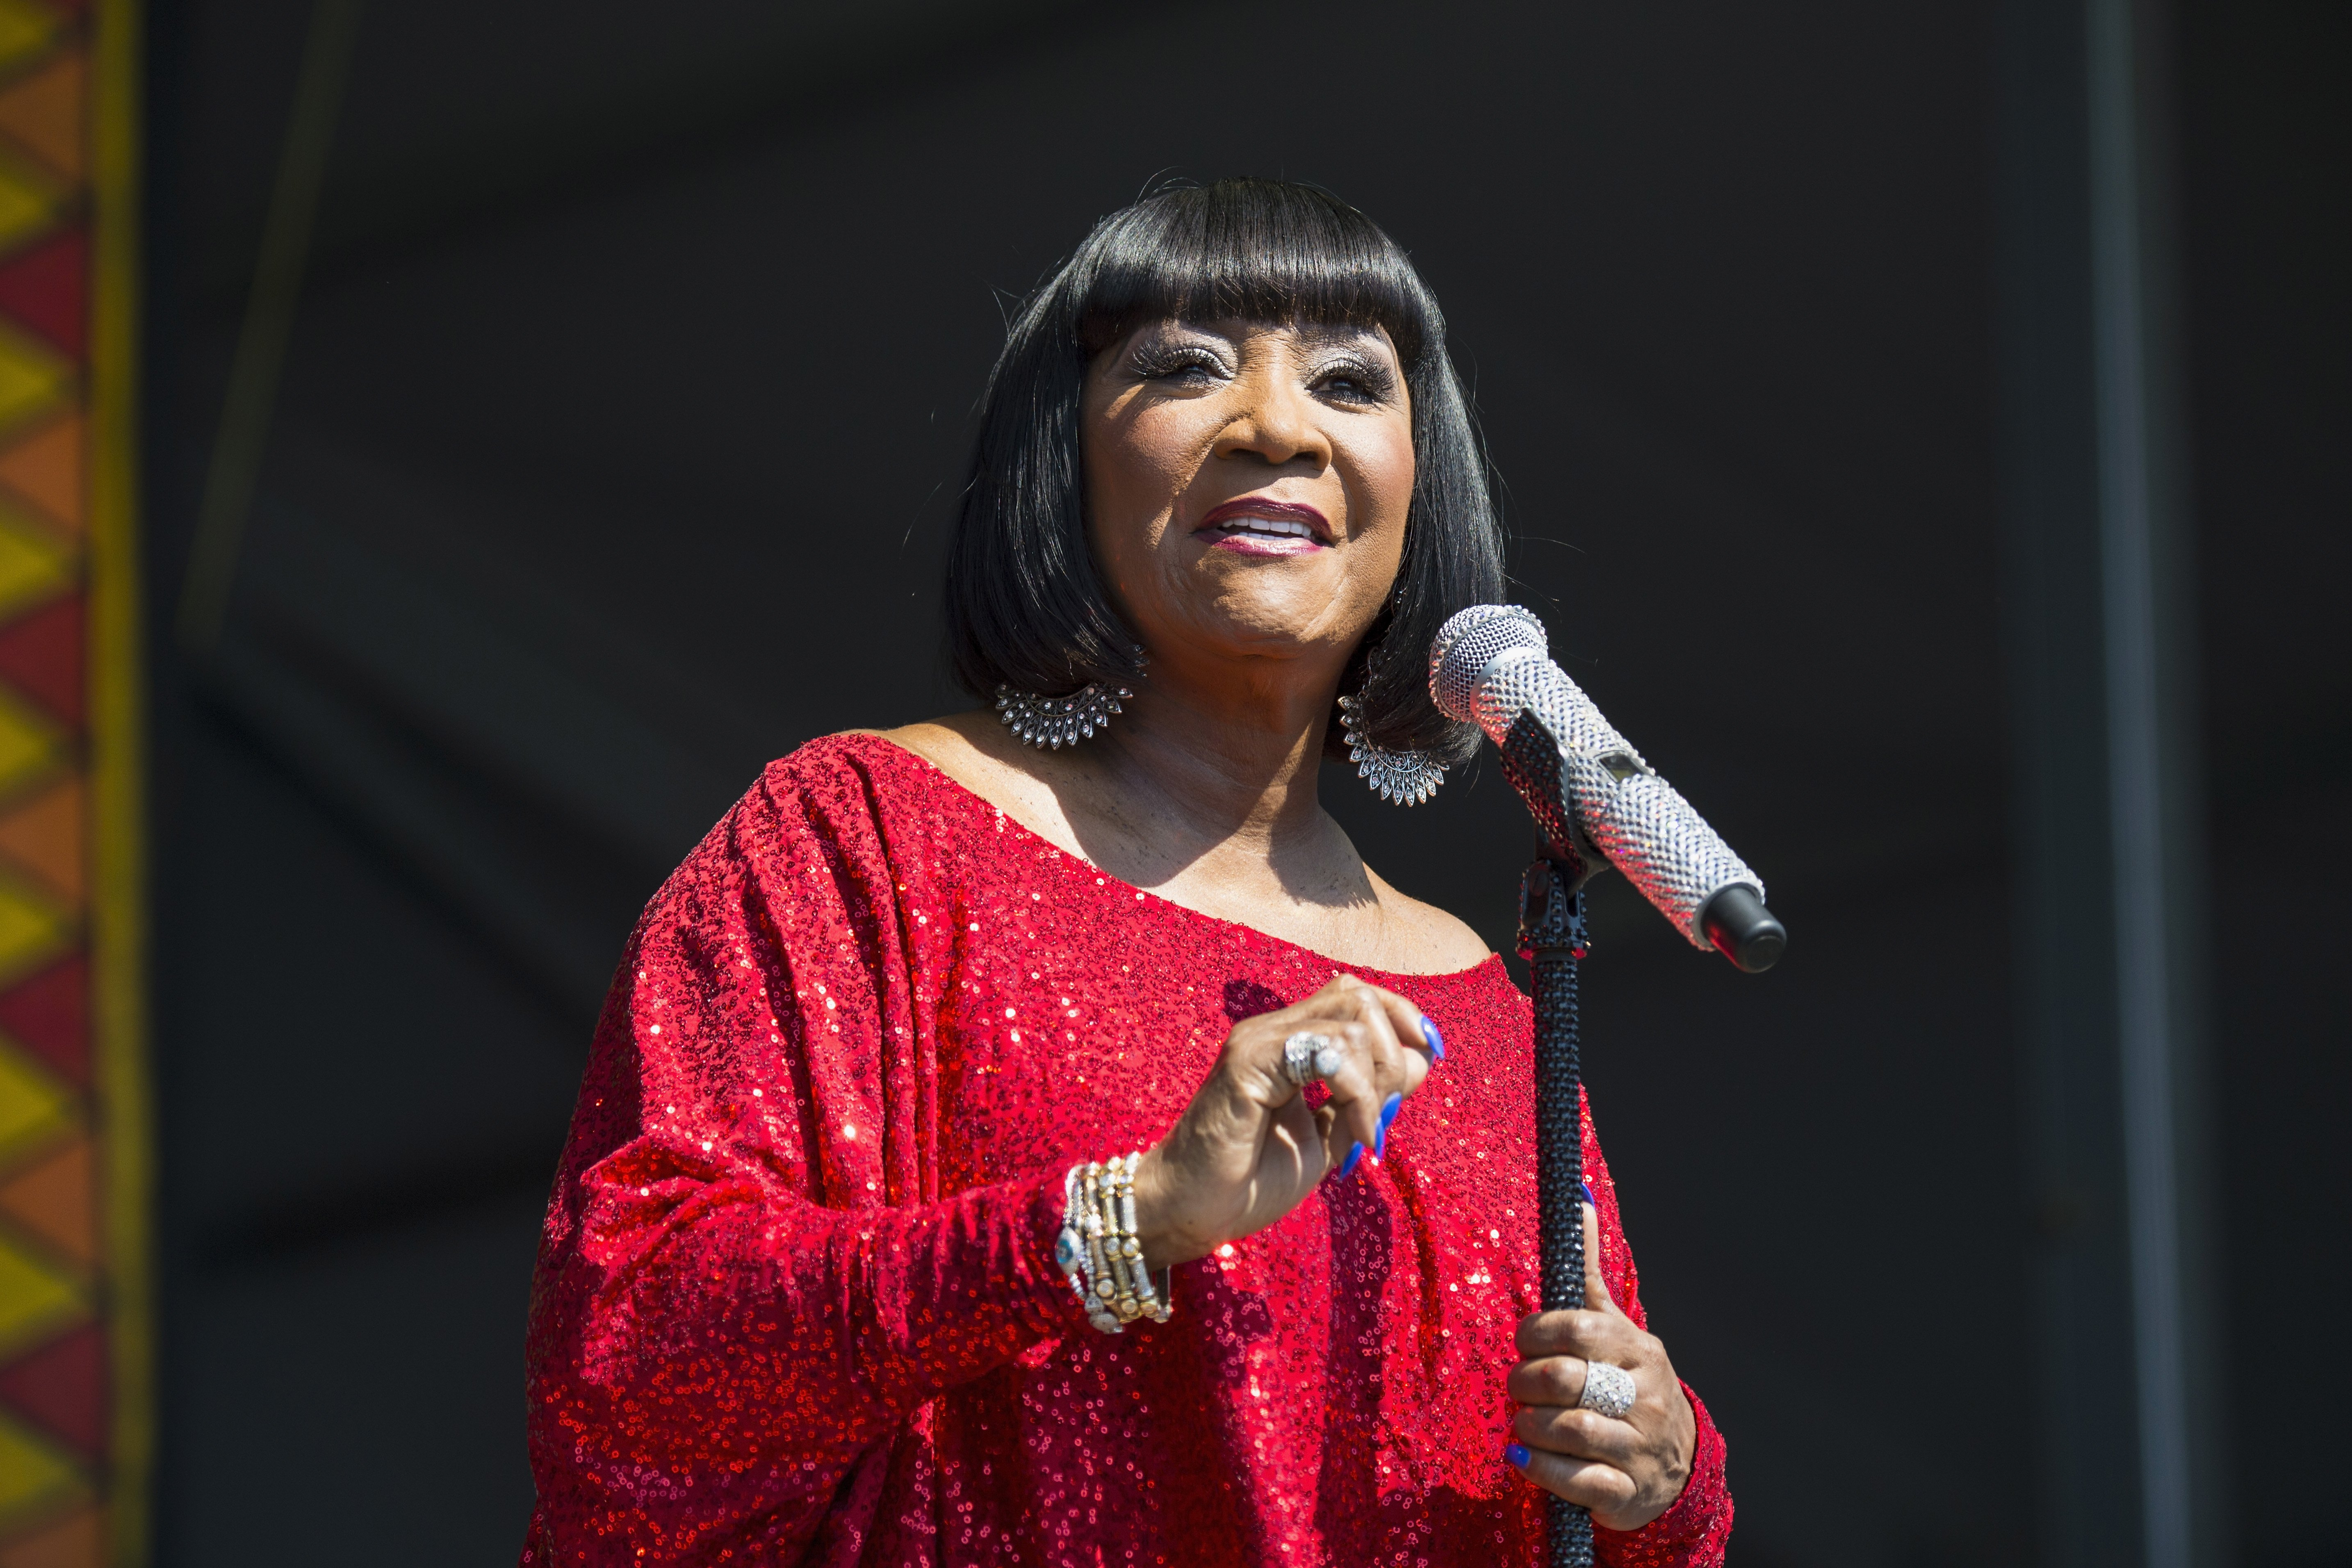 Patti LaBelle at the 2017 New Orleans Jazz & Heritage Festival on May 7, 2017   Photo: Getty Images